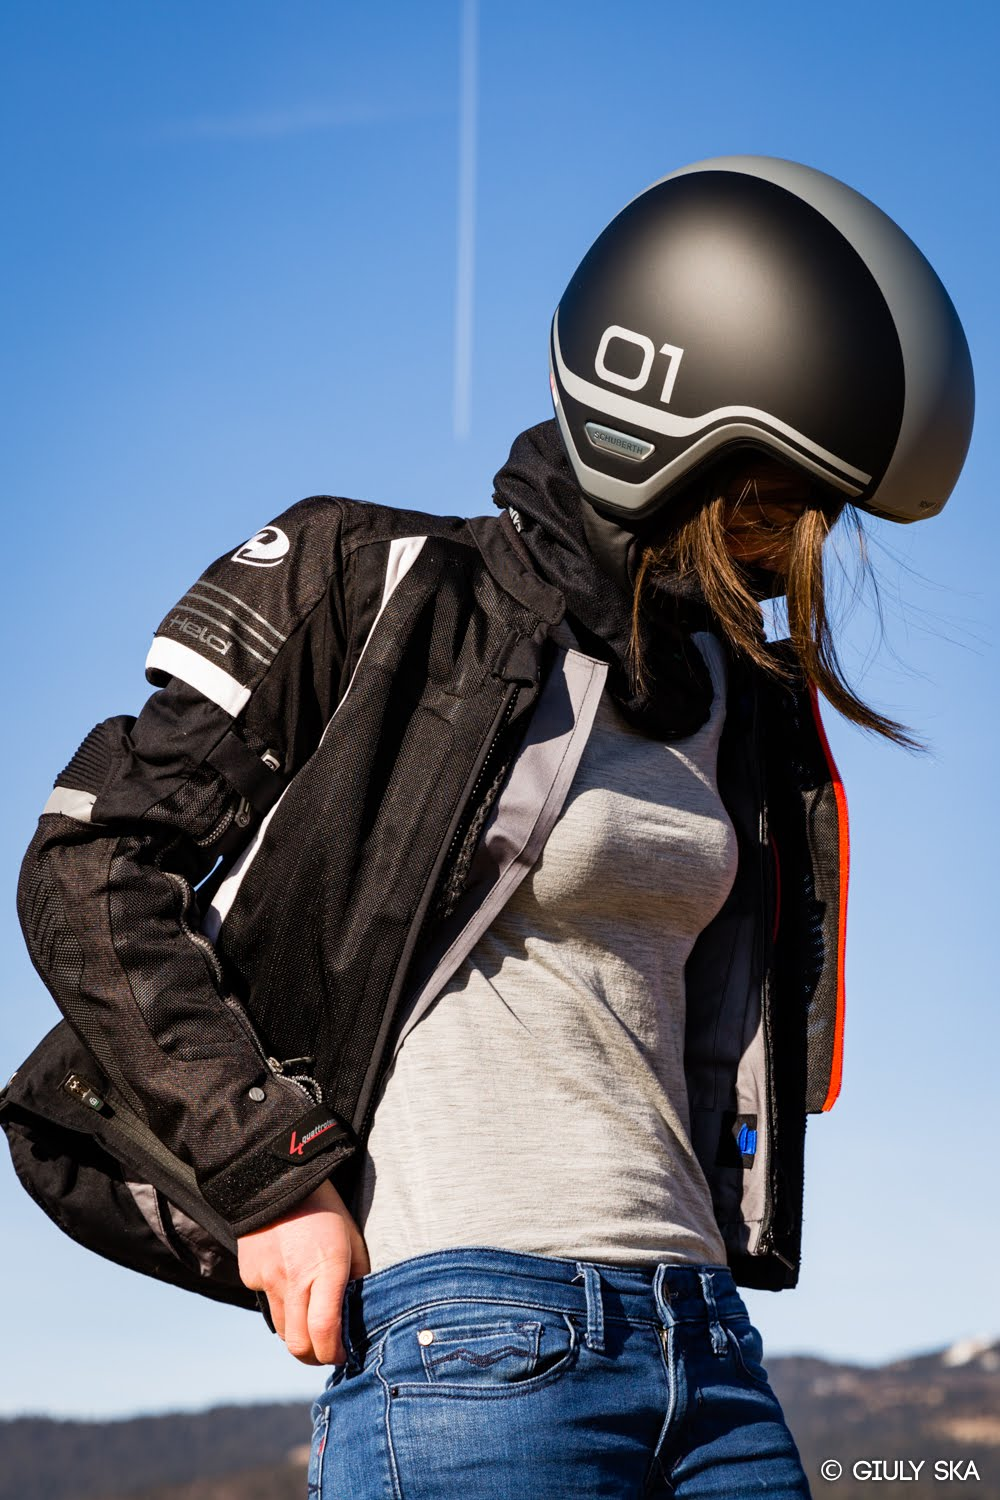 Schuberth 01 by MissBiker